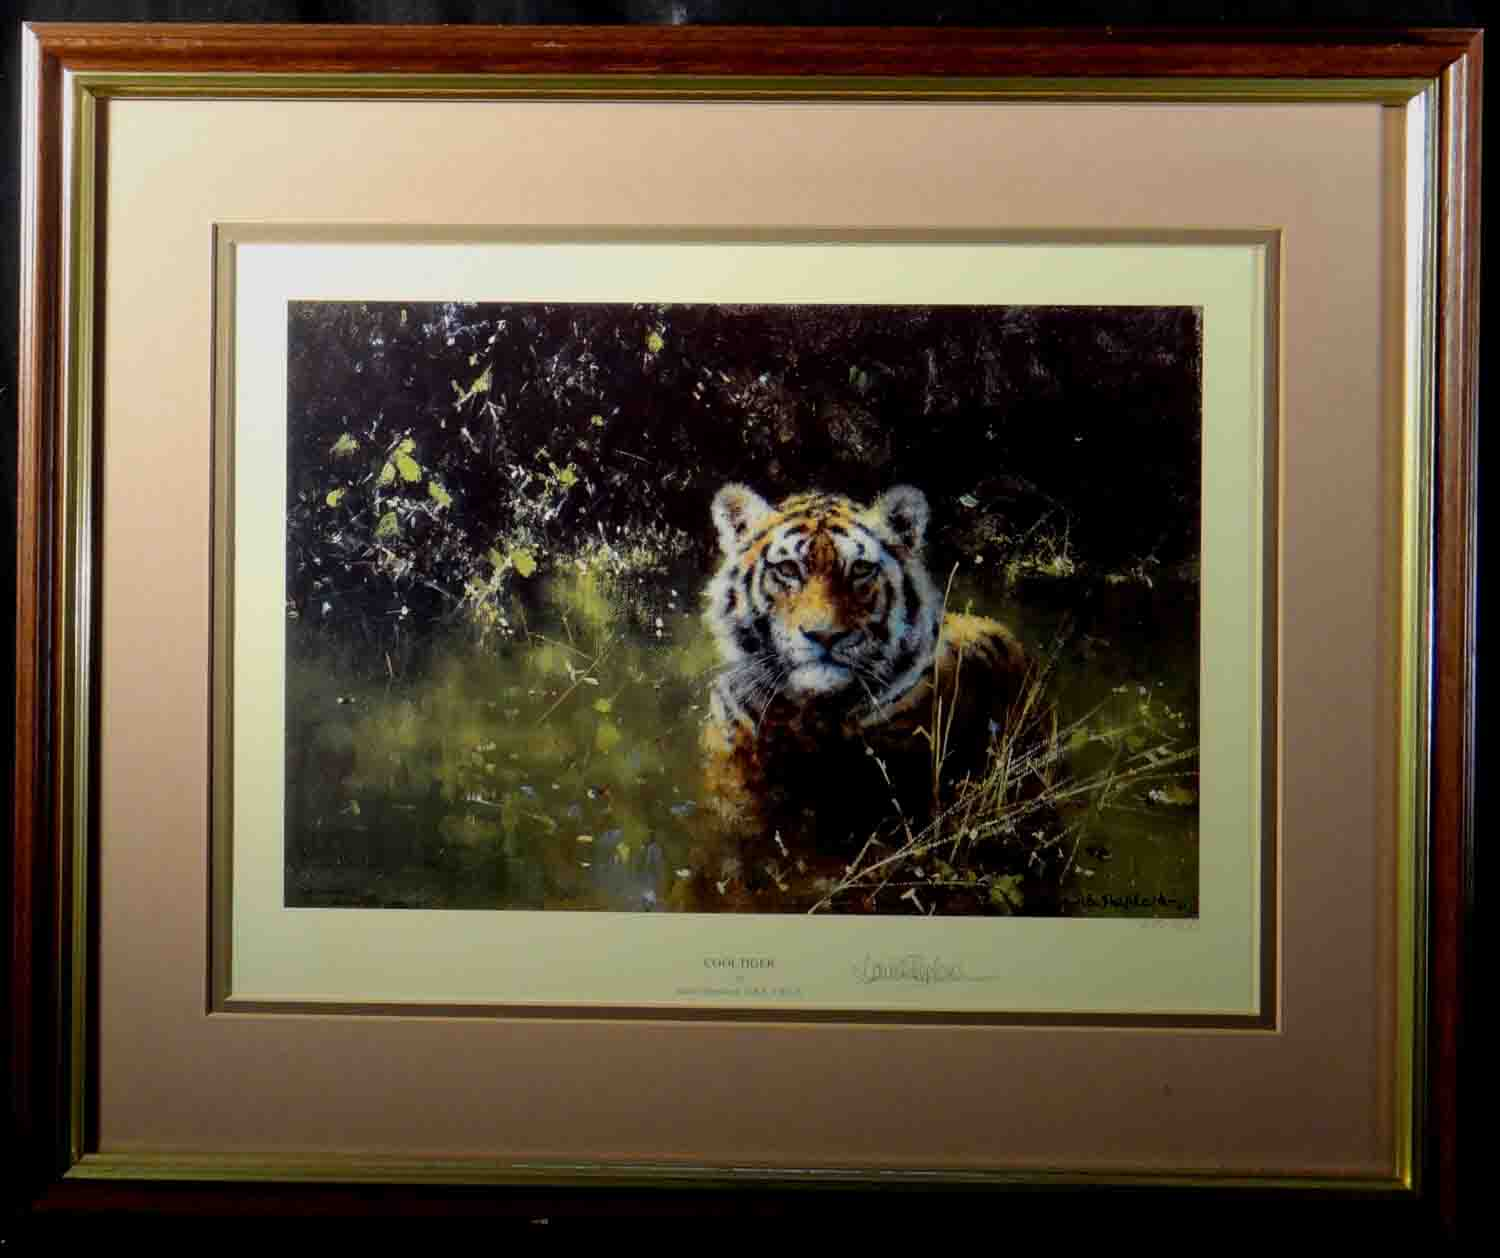 david shepherd, cool tiger, cameo, tiger, signed limited edition print